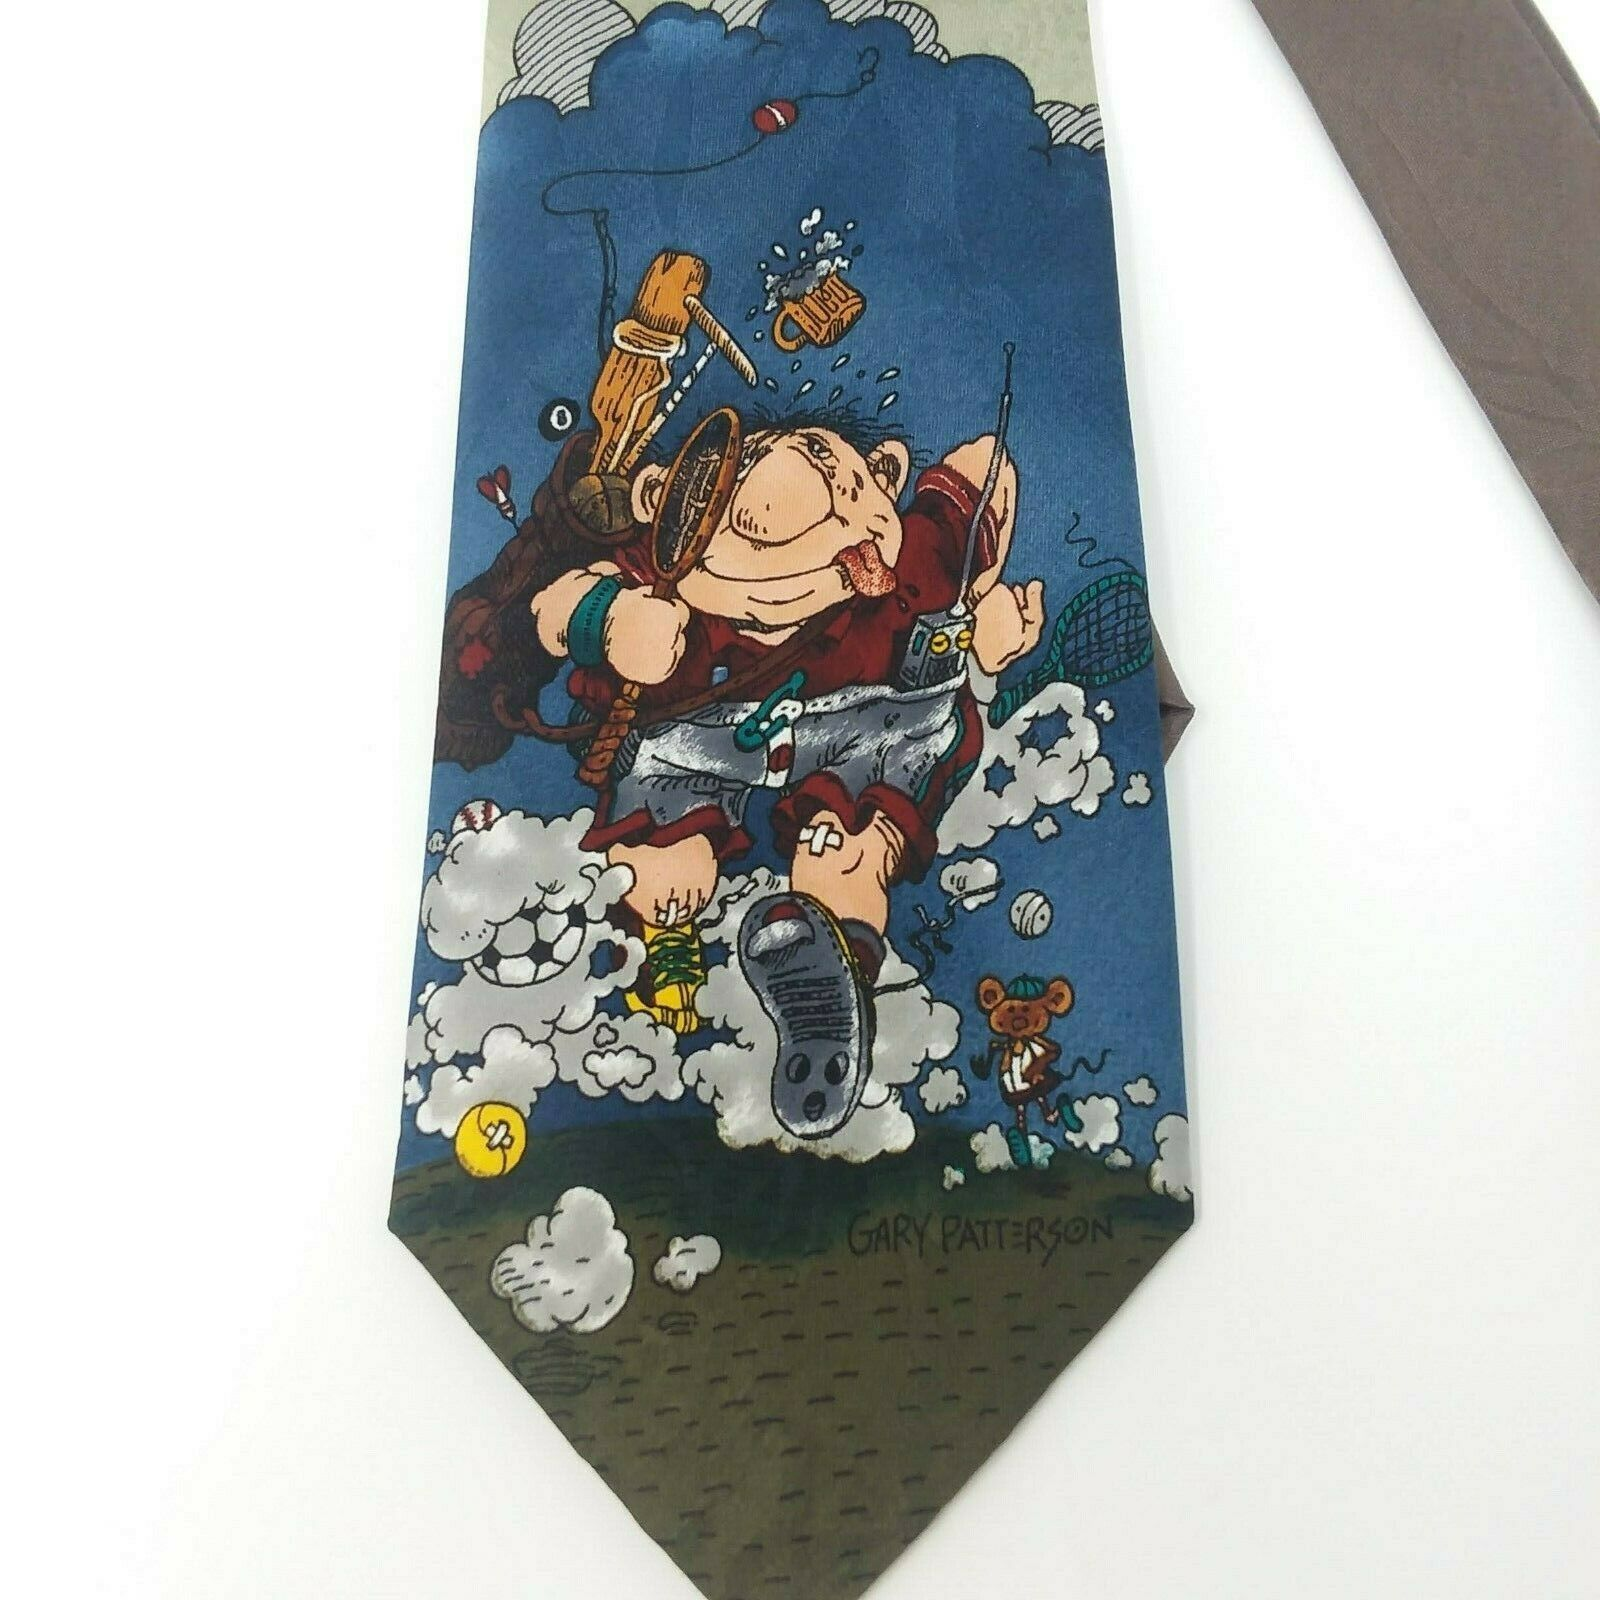 "Primary image for Balancine Hot Cakes Neck Tie ""Weekend Warrior"" Gary Patterson Sports Necktie"